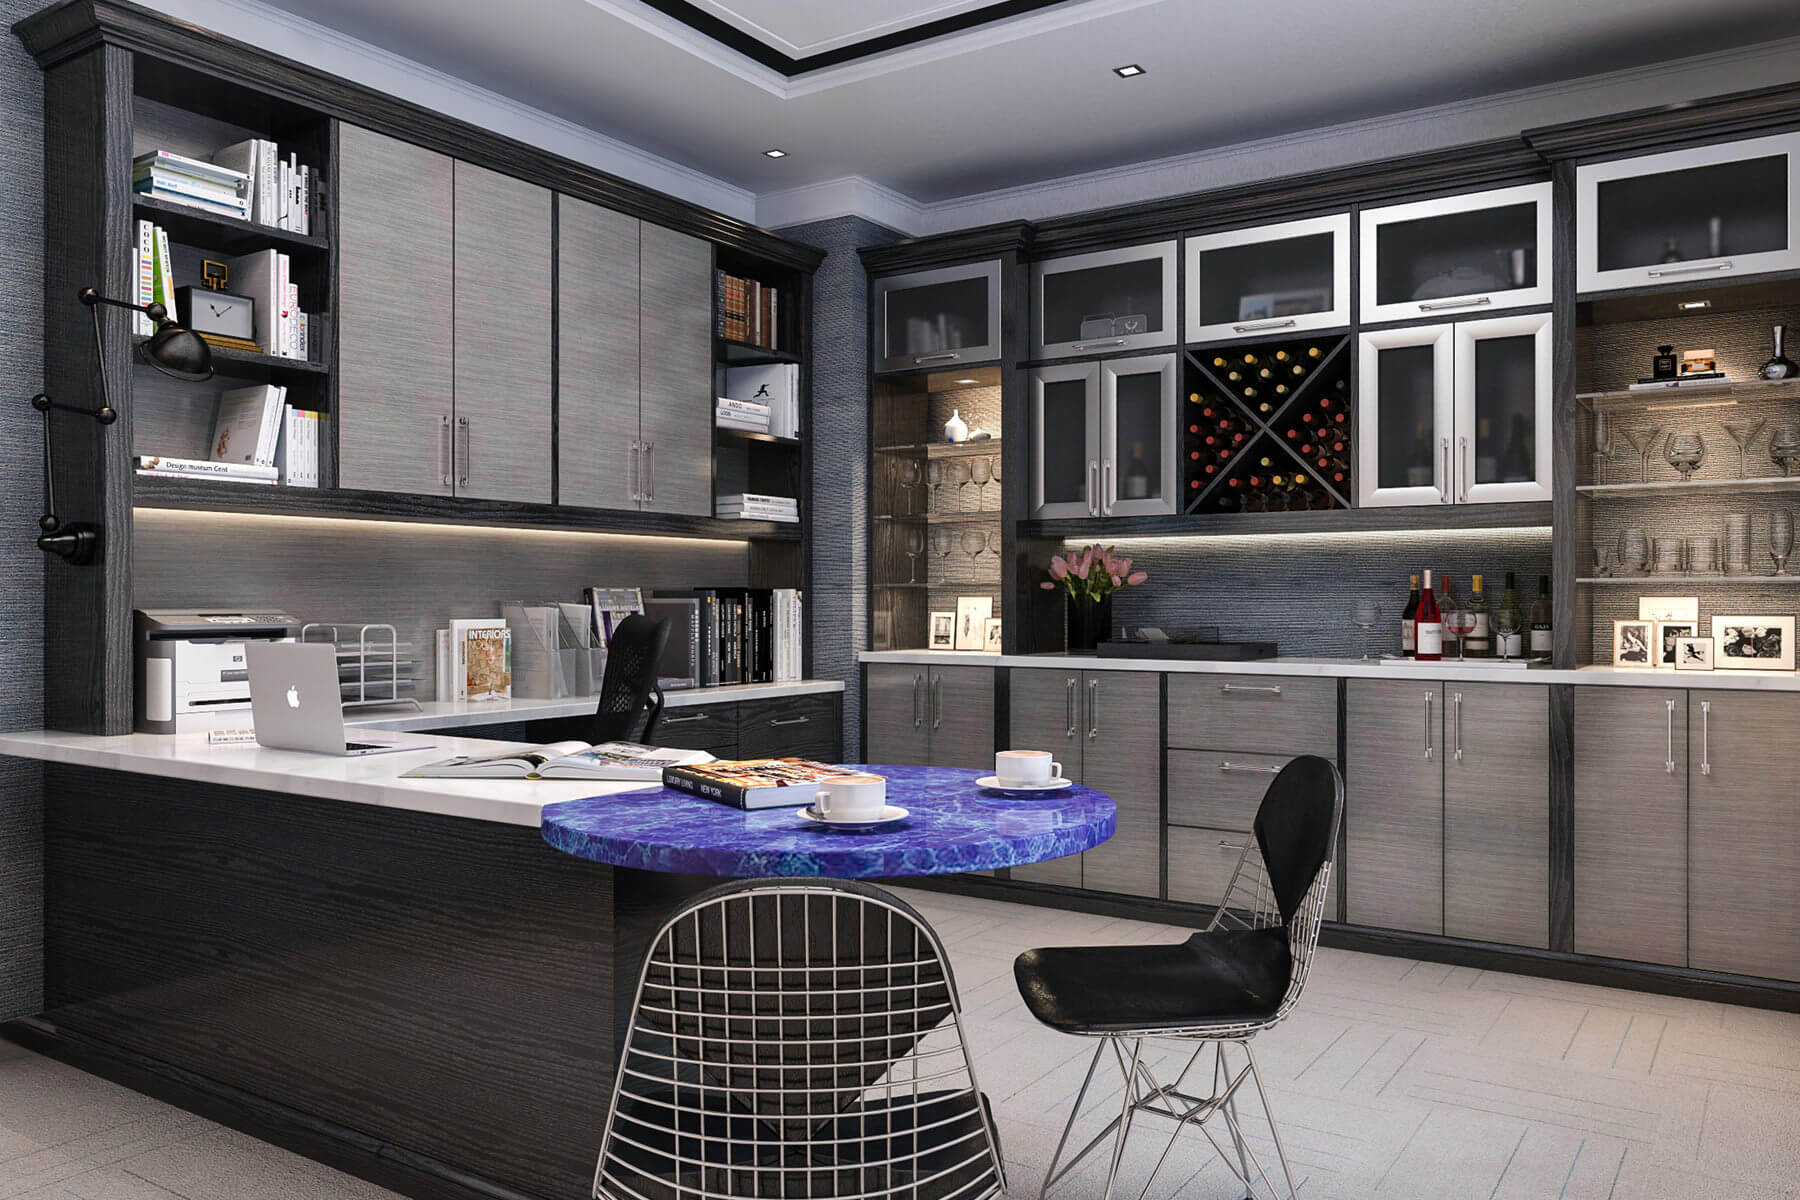 Hereu0027s A Huge Contemporary Home Office With Loads Of Cabinetry As Well As A  Wet Bar